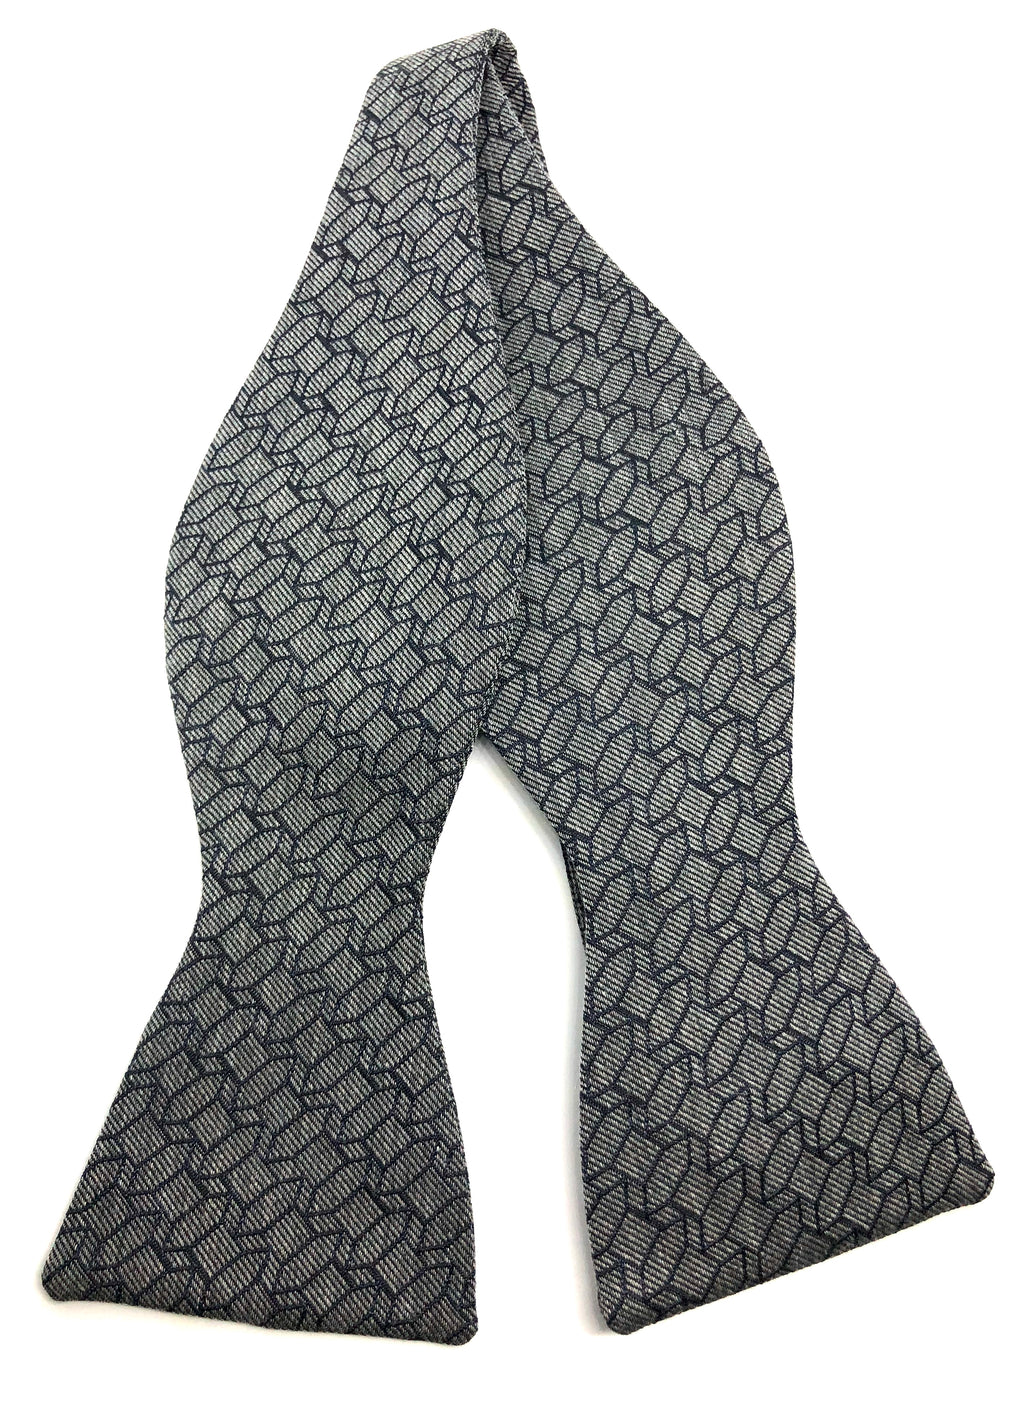 Causeway Marled Self-Tied Bow Tie - Grey